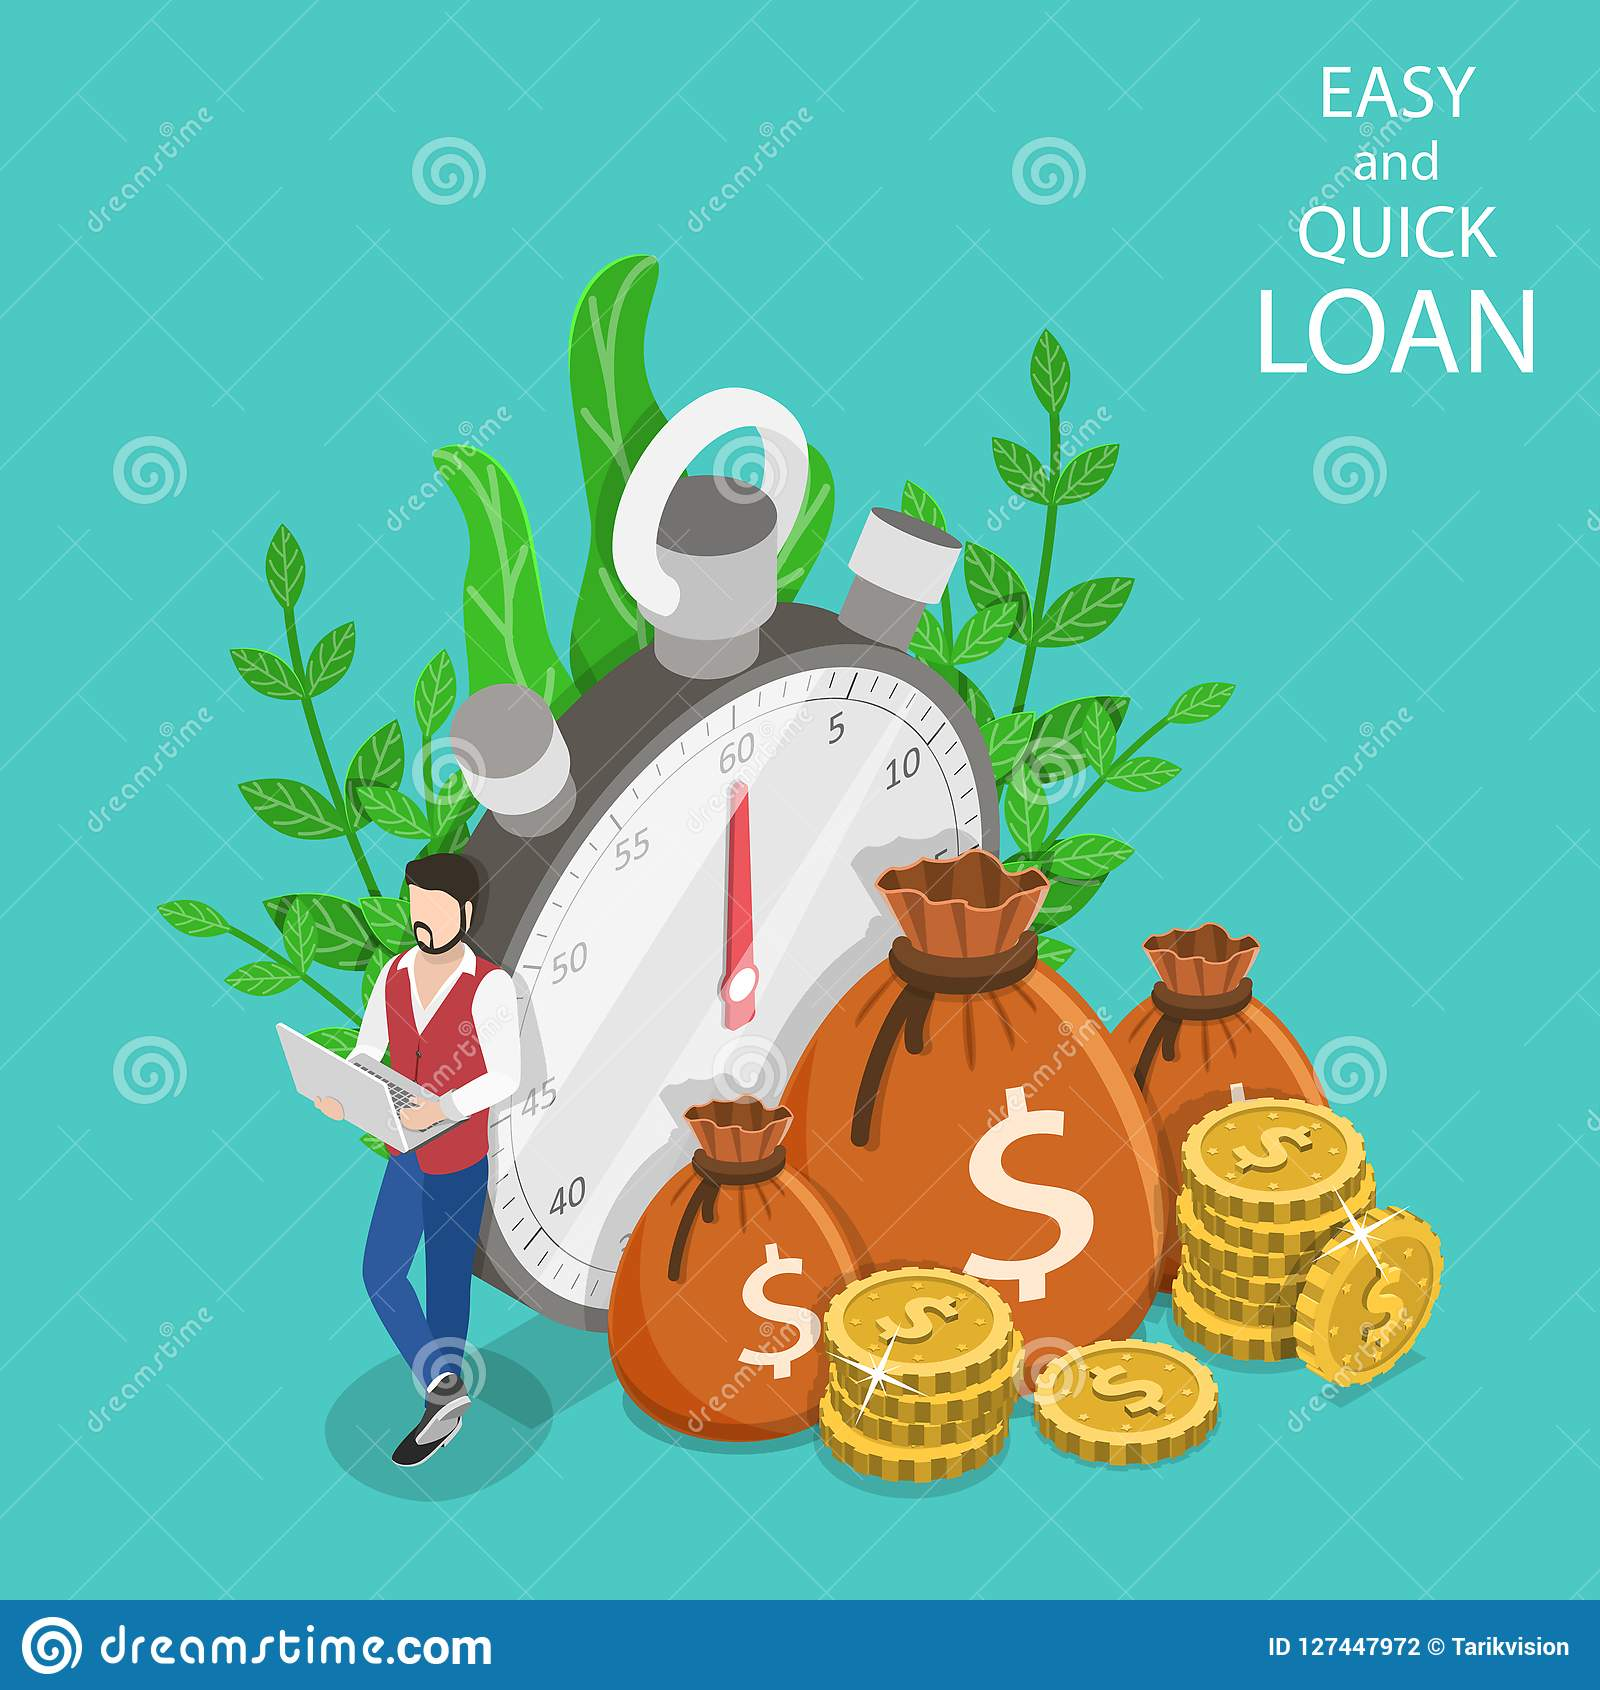 Quick And Easy Loan Isometric Flat Vector Concept. Stock